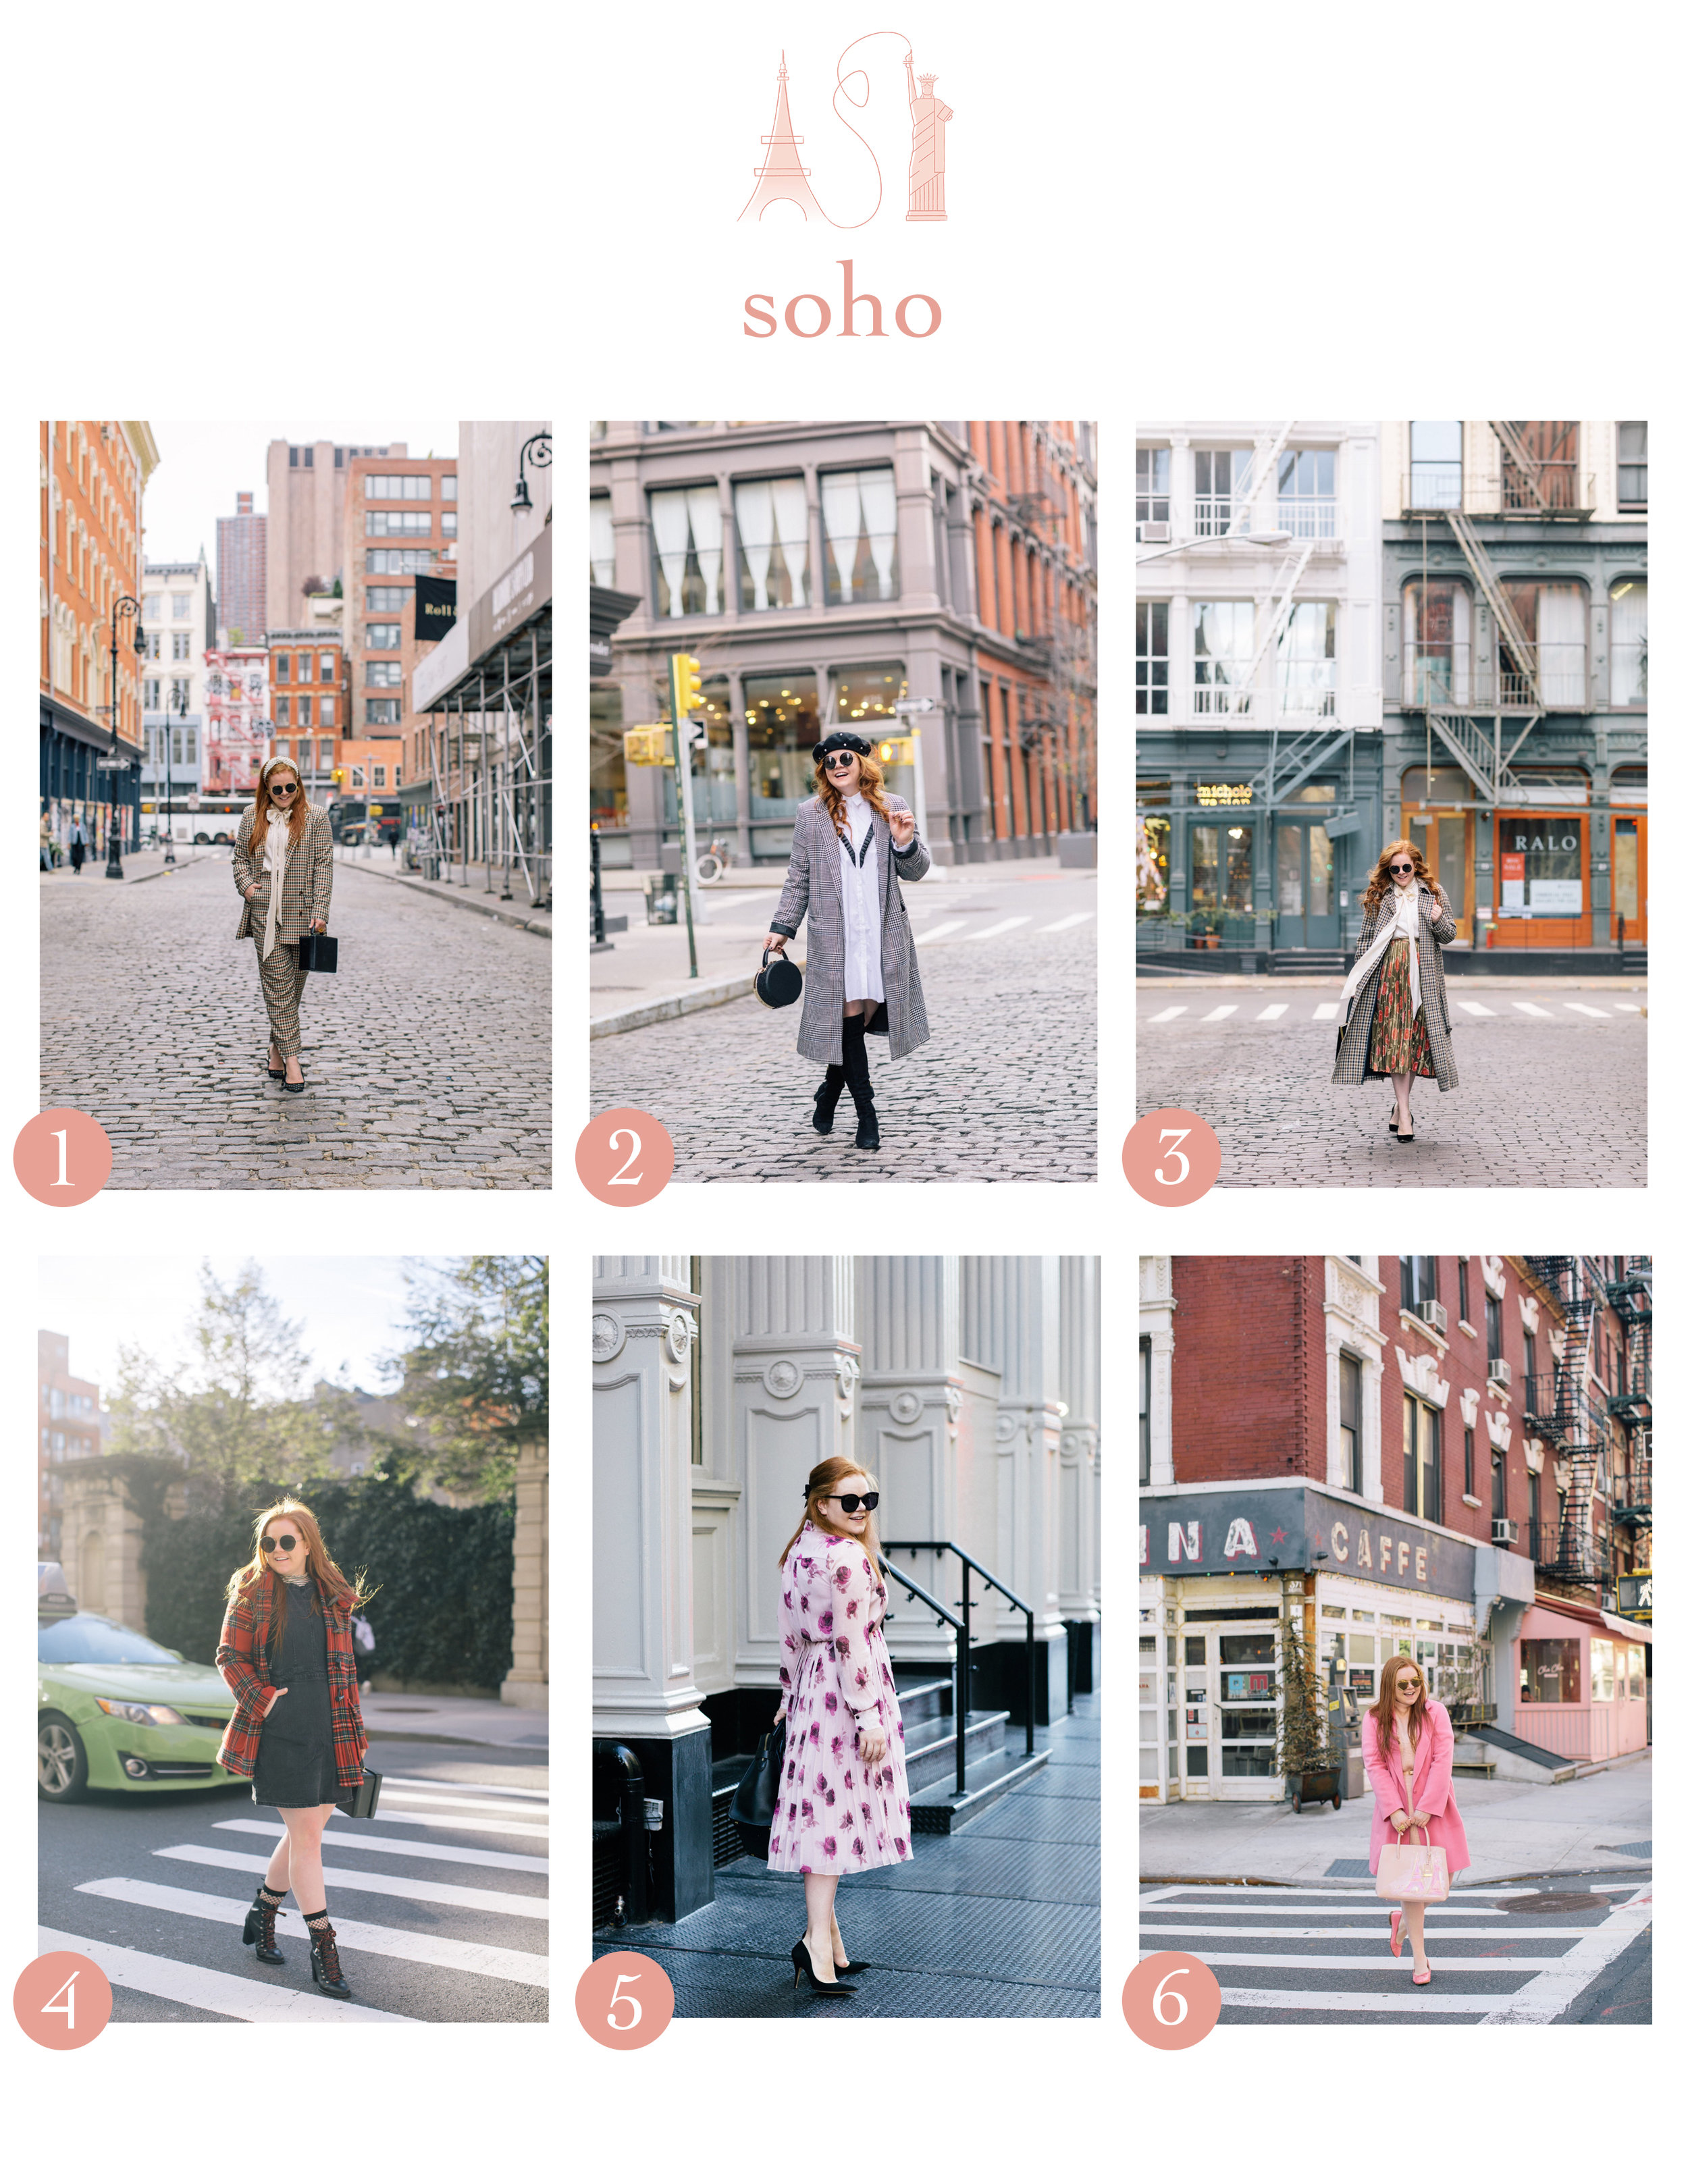 soho_photo_locations.jpg